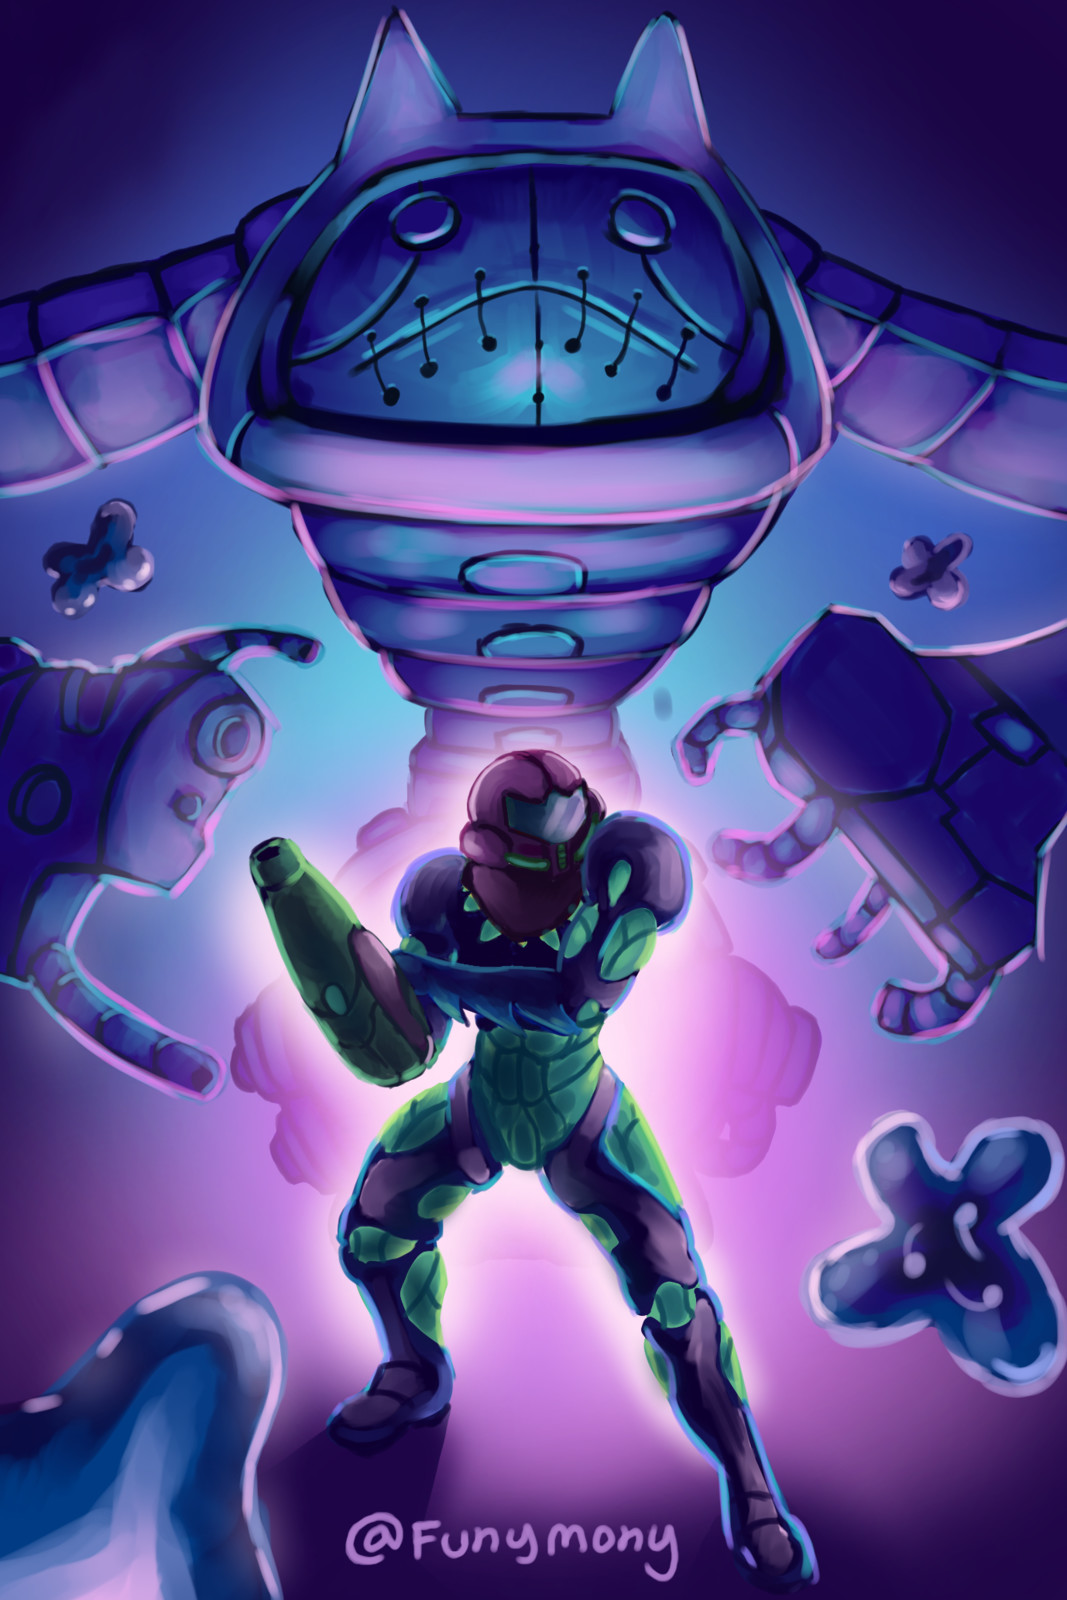 """Metroid Fusion had a boss called """"Nightmare"""" that I really liked. He had a cool design and a creepy aesthetic."""